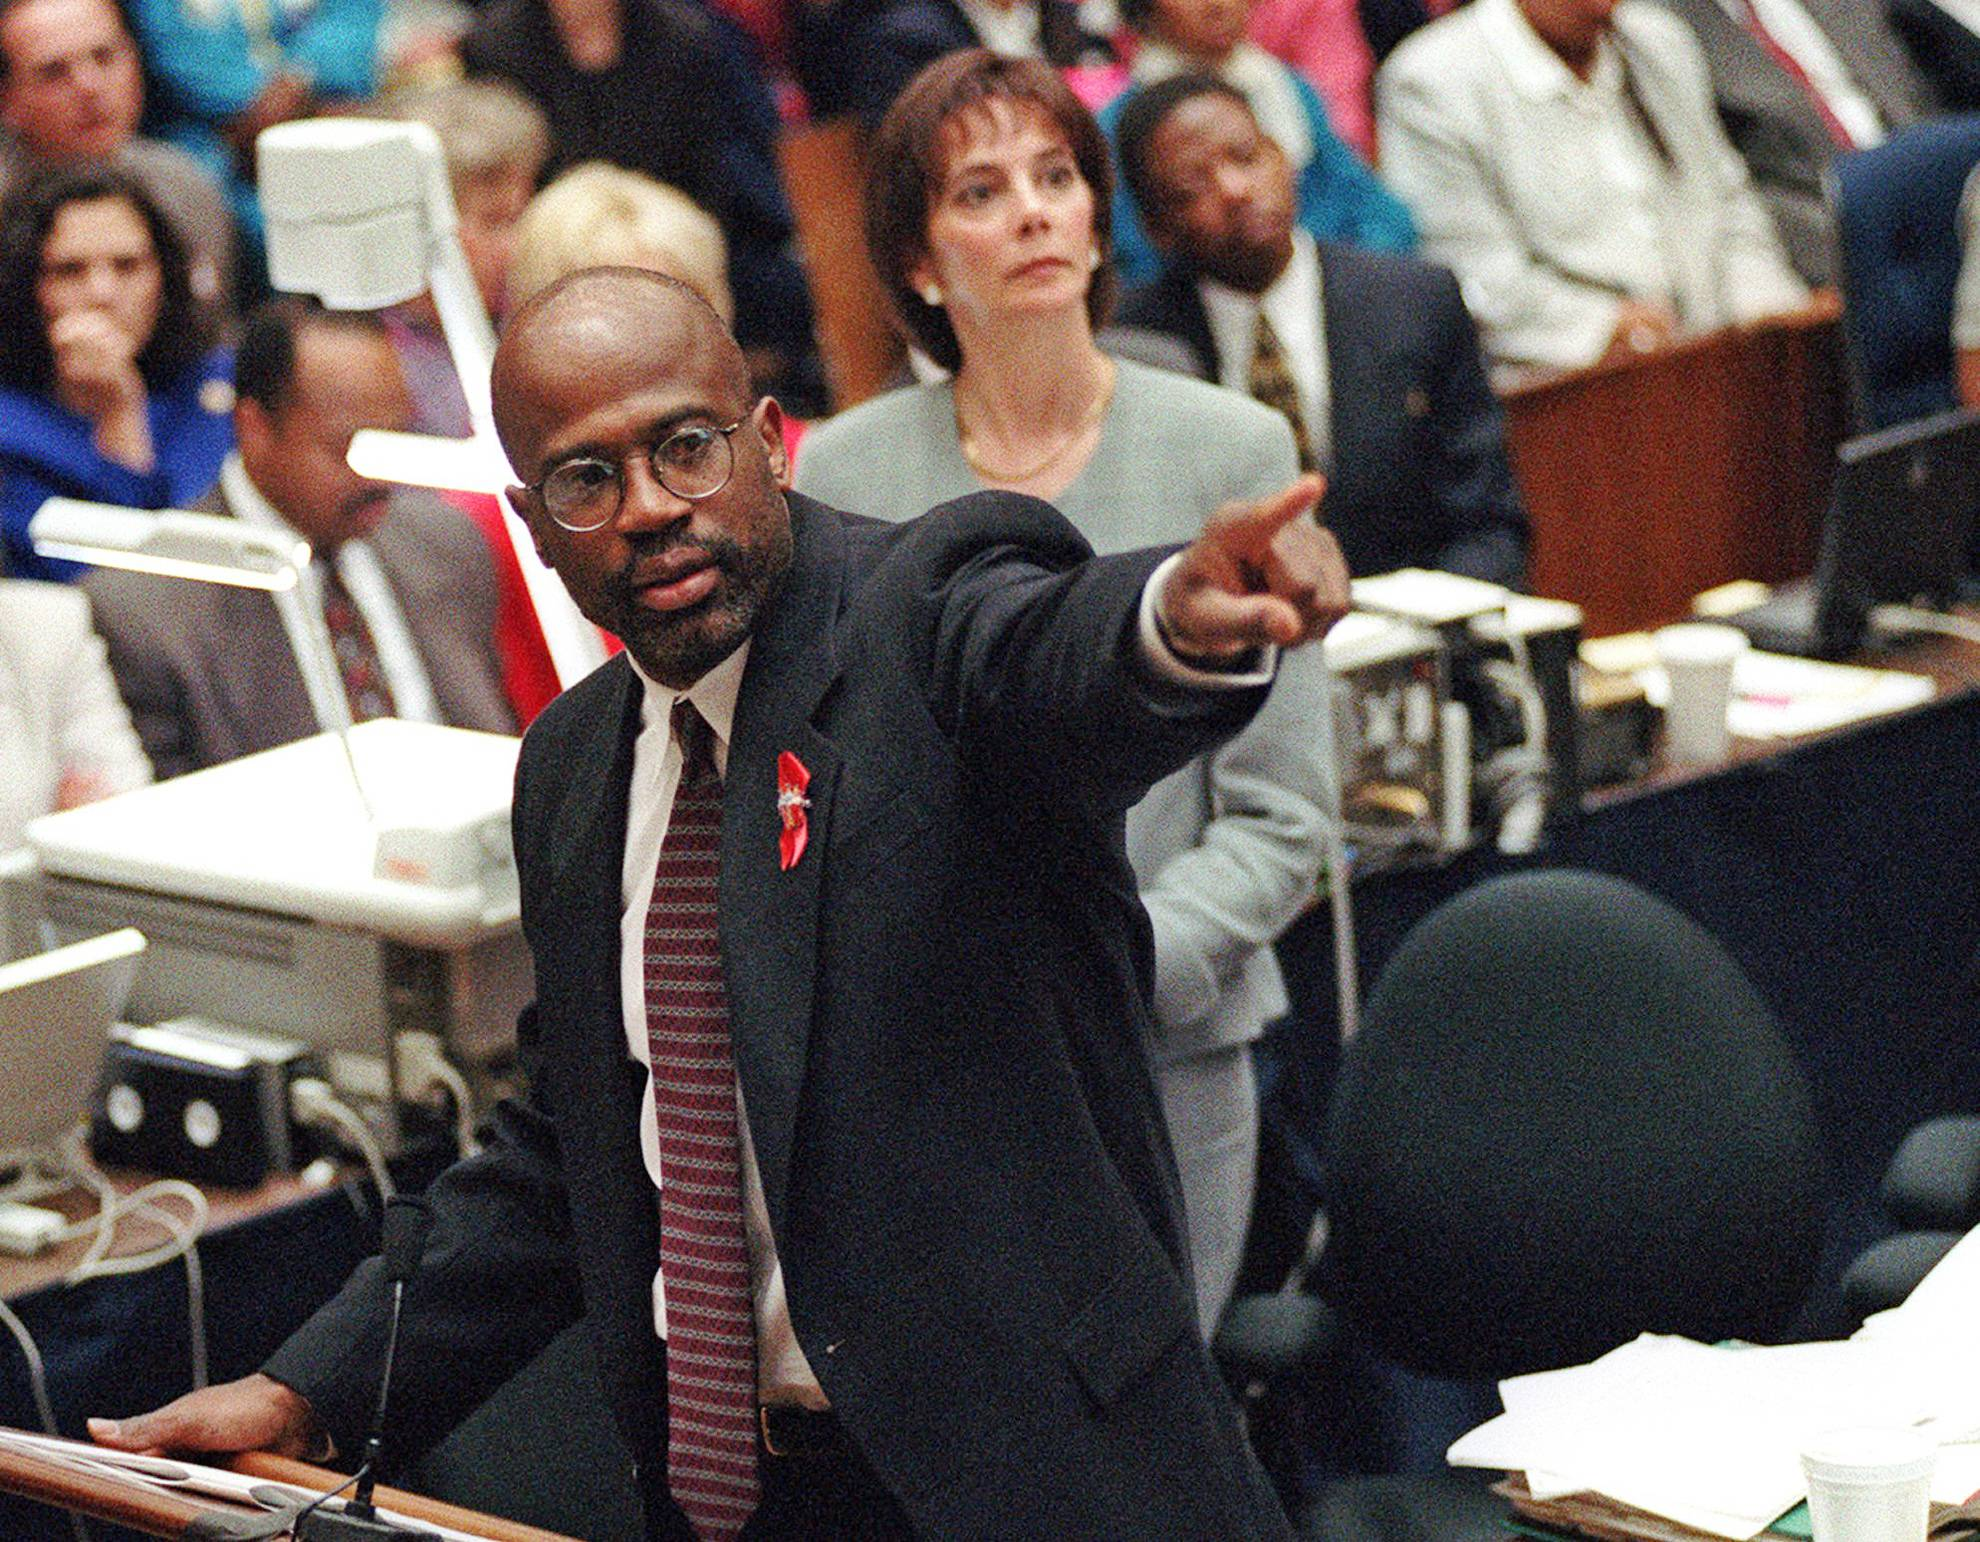 Prosecutor Christopher Darden points at a chart during his closing arguments as co-prosecutor Marcia Clark looks on in a Los Angeles courtroom during the O.J. Simpson double-murder trial. Darden, the co-prosecutor who was criticized for having Simpson try on the so-called murder gloves, left the district attorney's office following the trial.